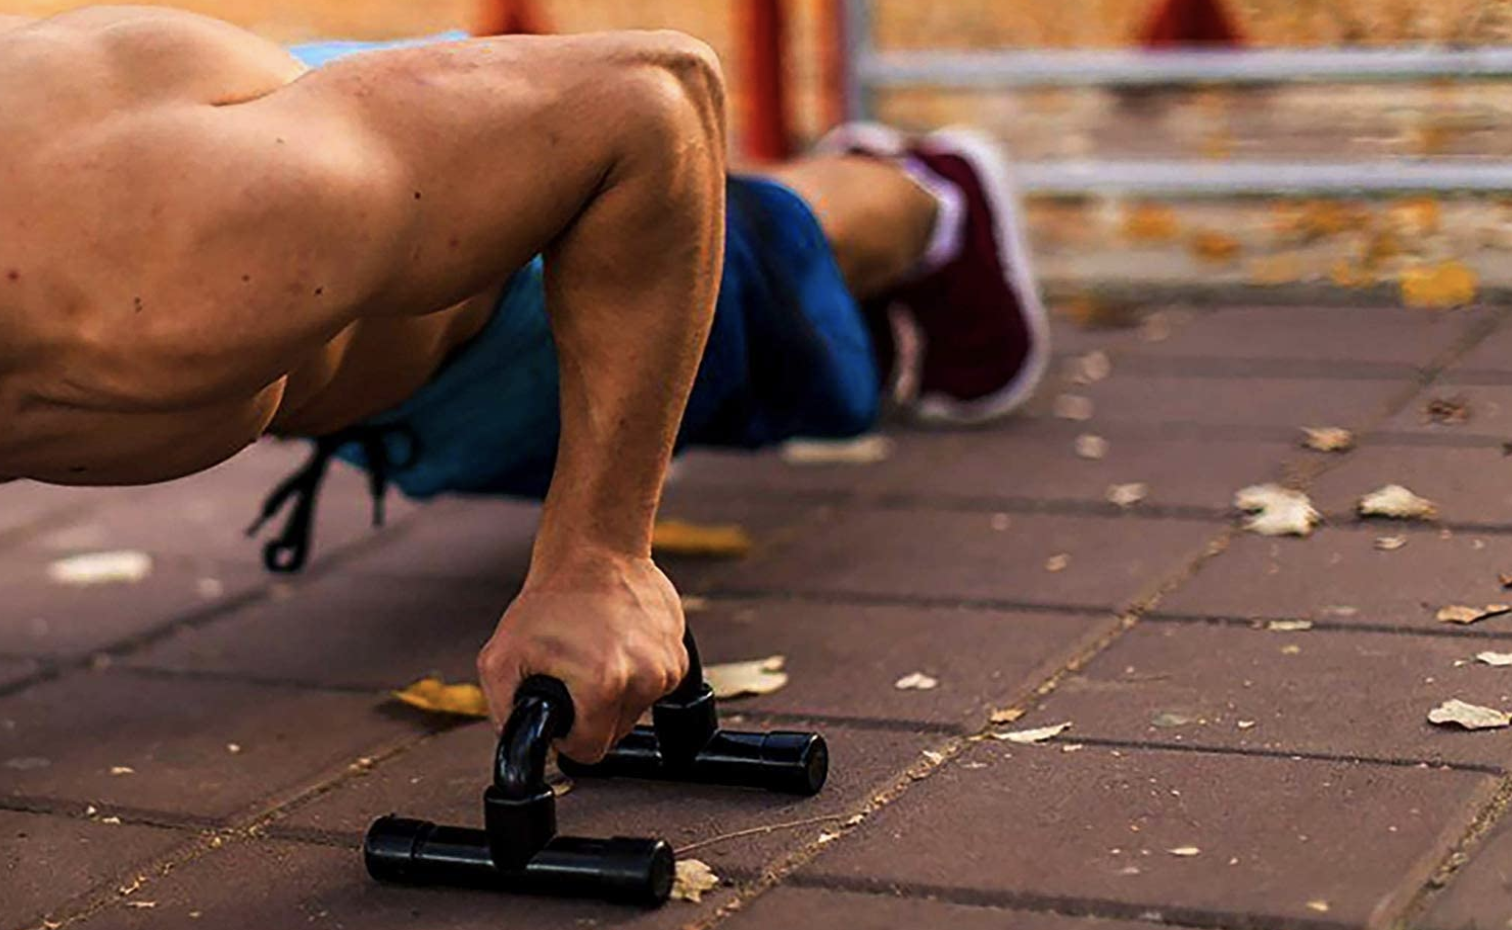 A model uses black push-up bars while exercising on an outdoor patio